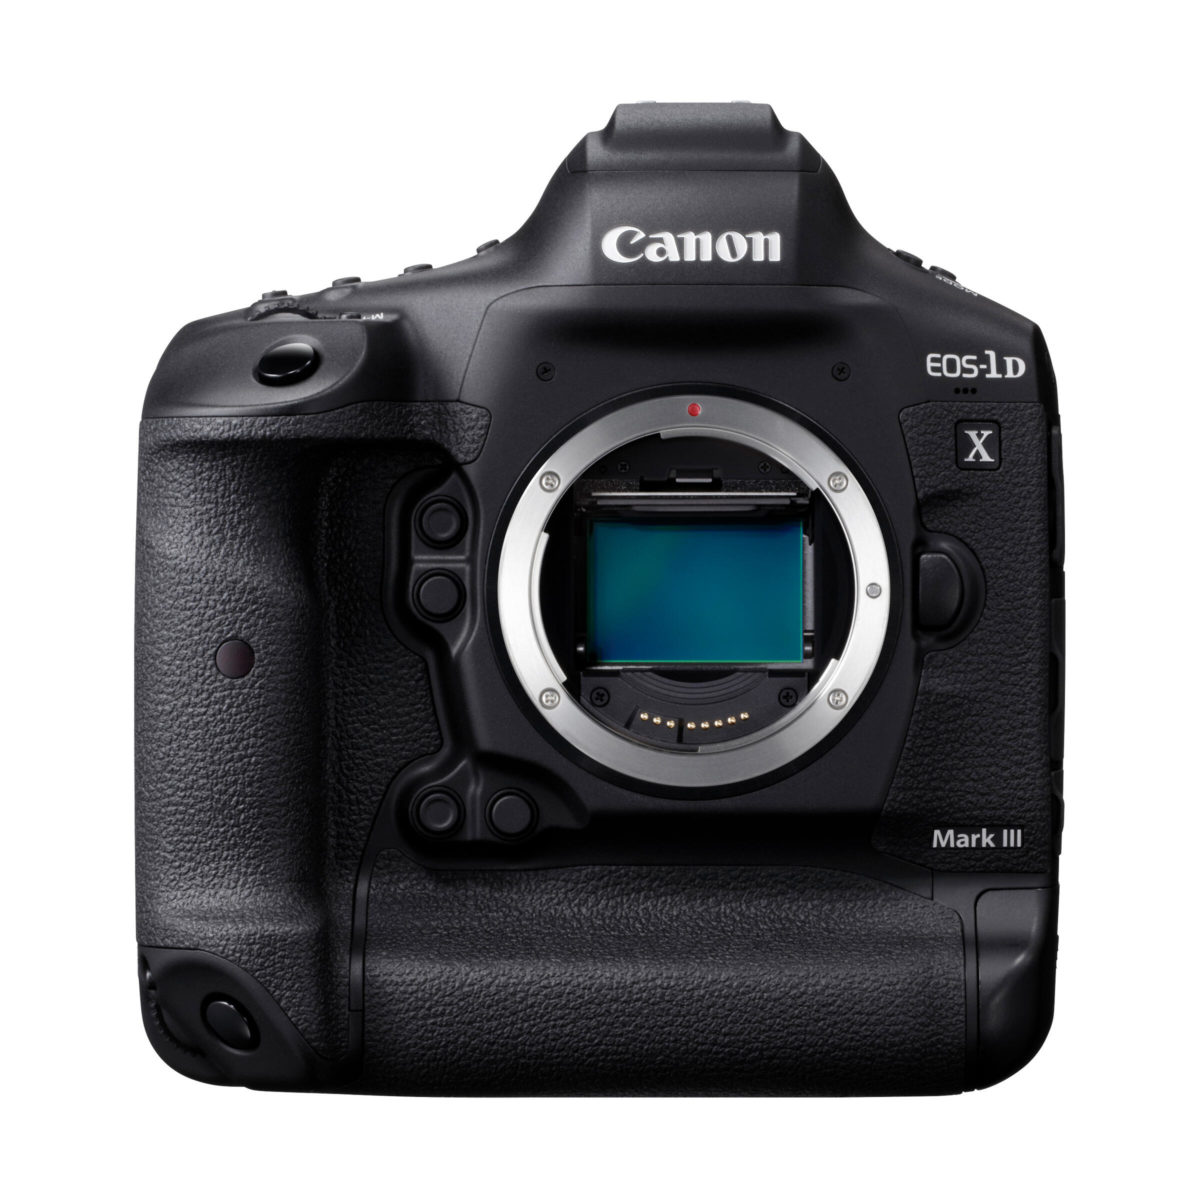 canon_eos_1d_x_mark_iii_body_01